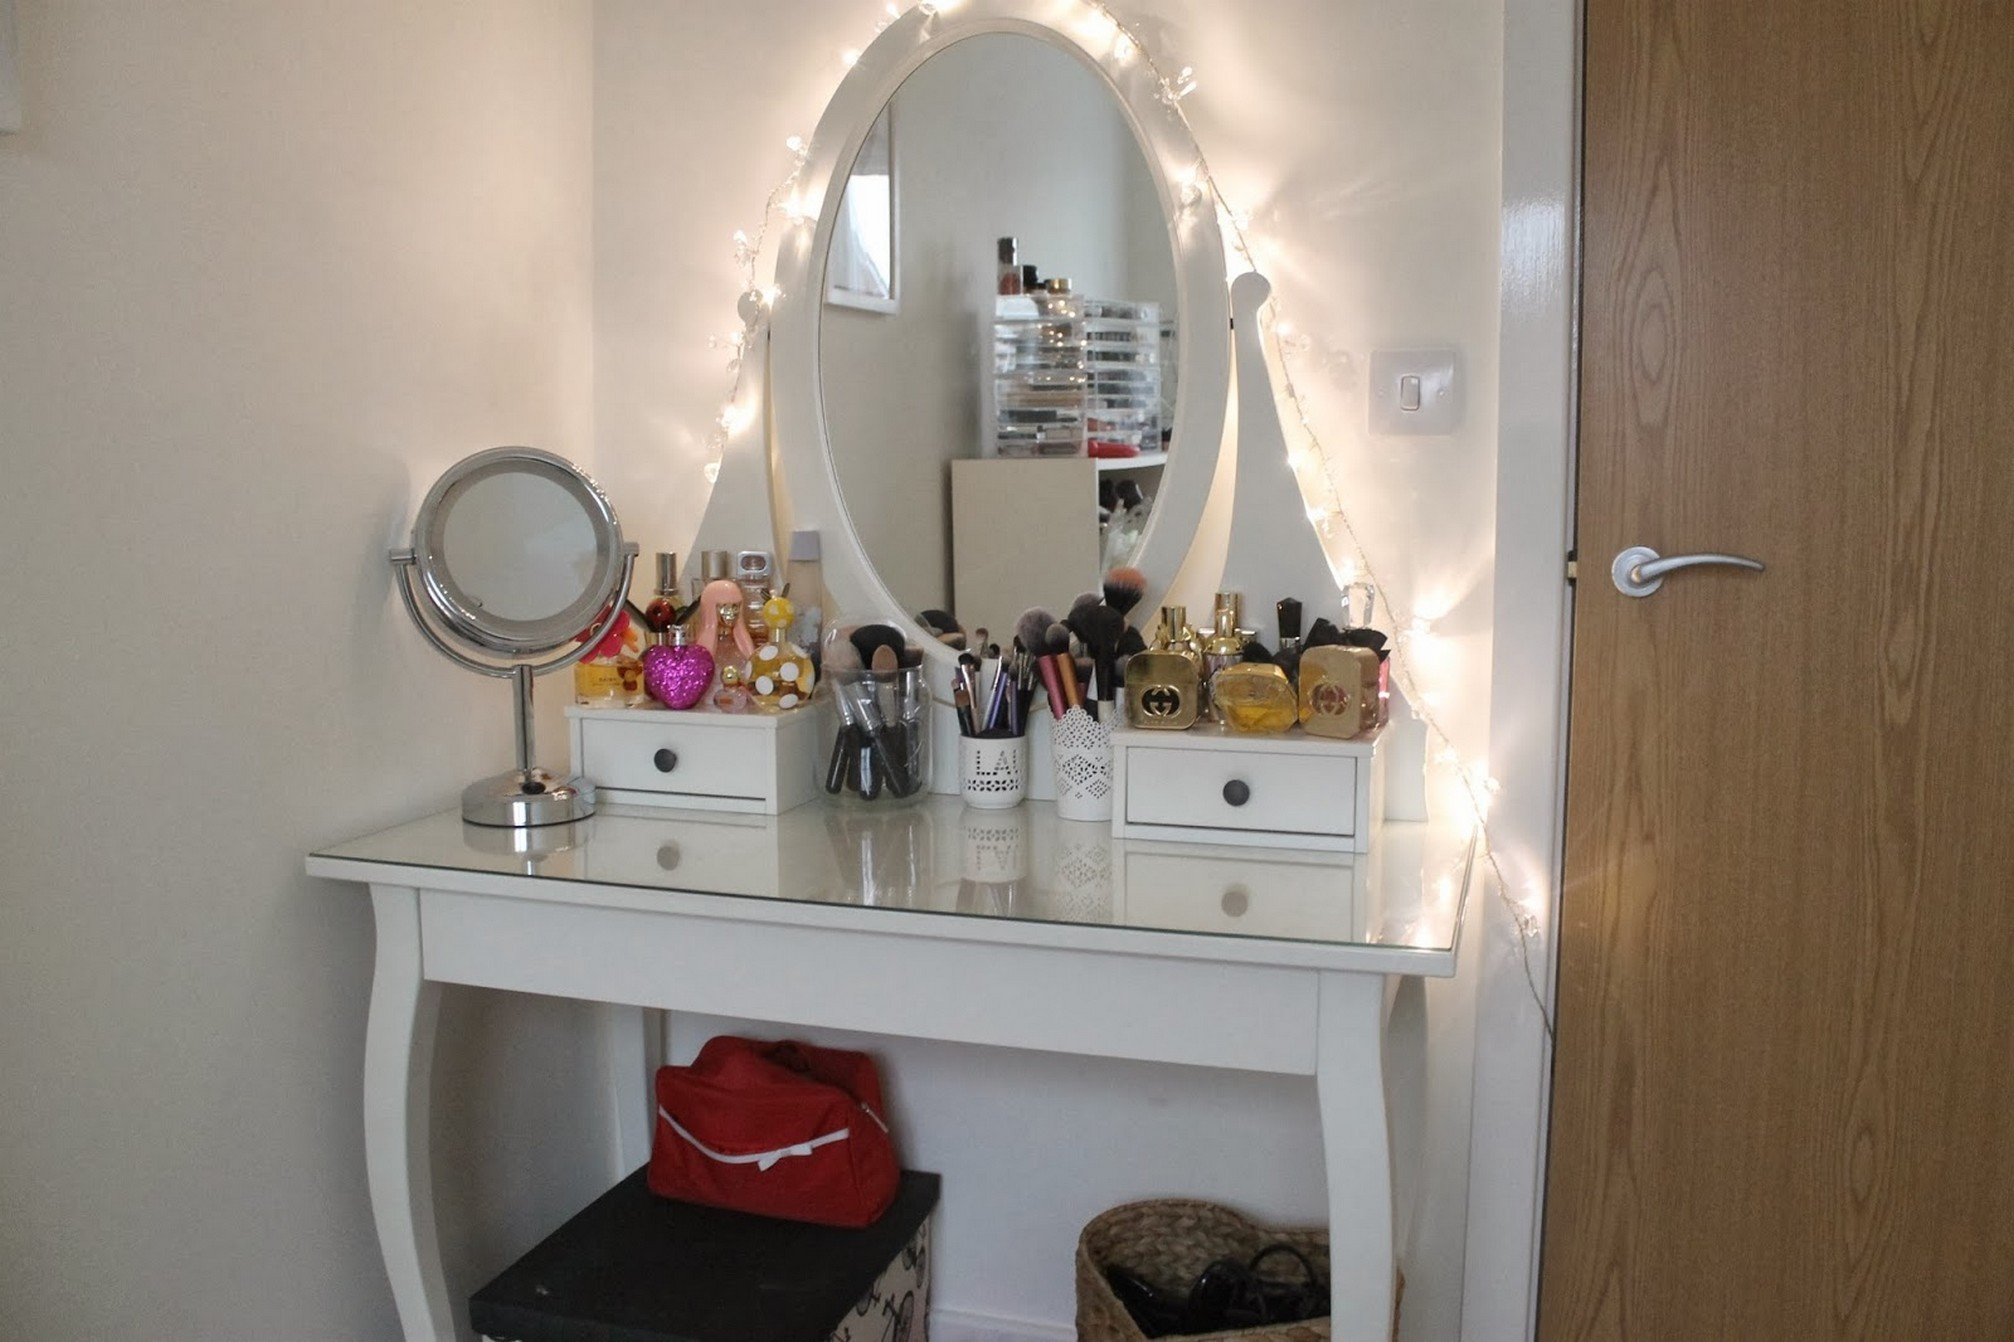 Superb Elegant White Polished Wooden Makeup Table With Lights And Oval Mirror